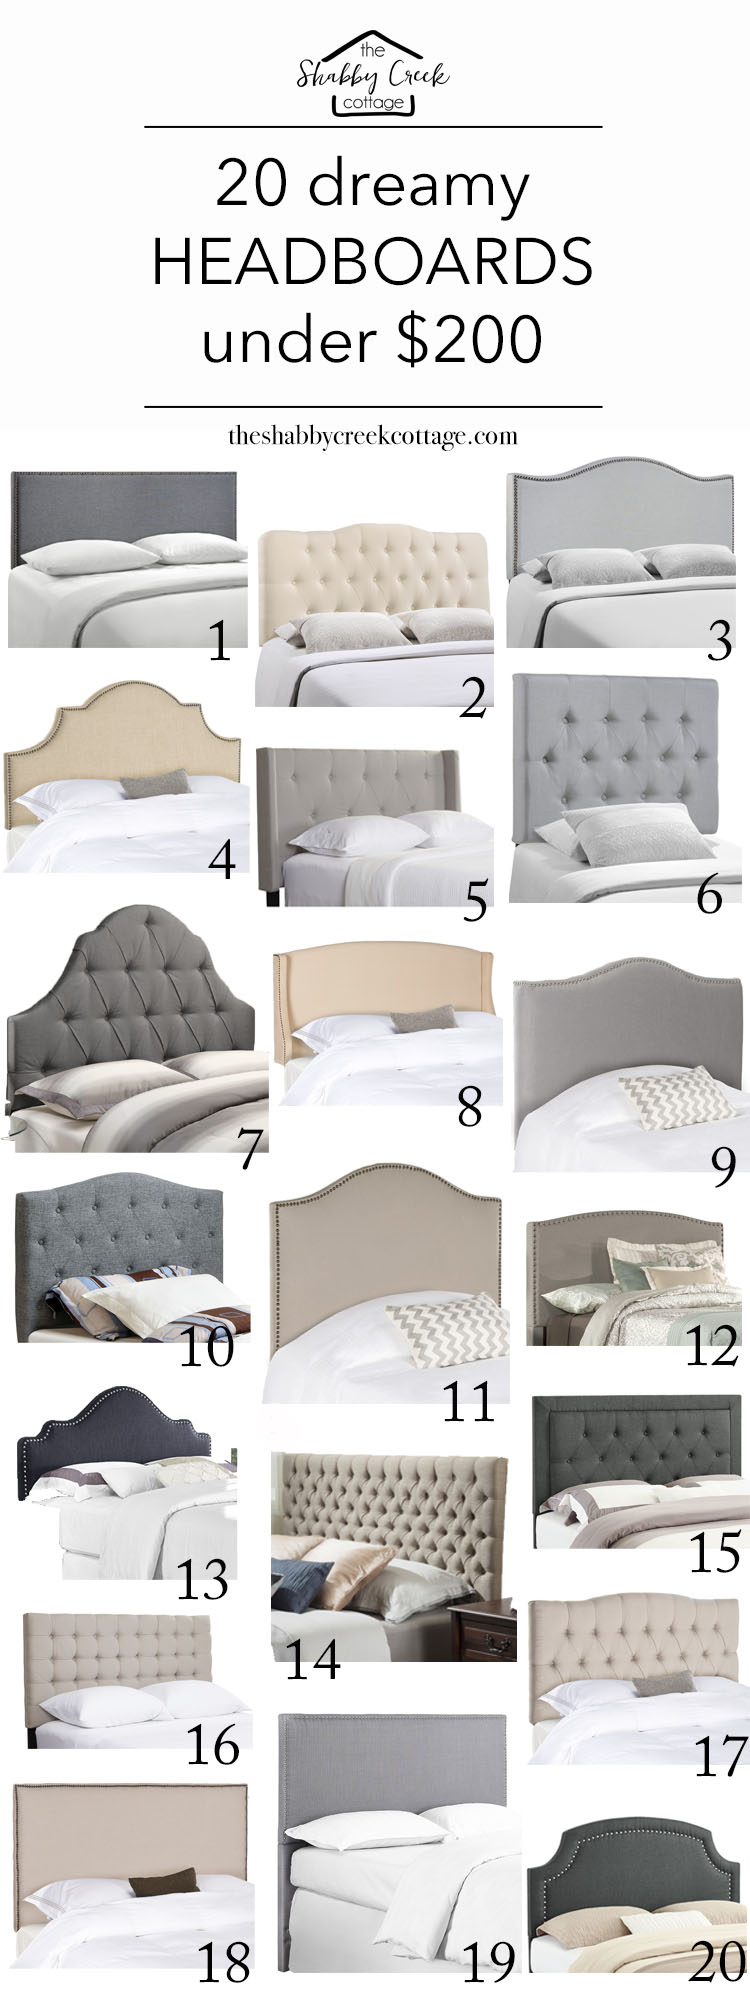 Love these headboards - gorgeous and on budget!